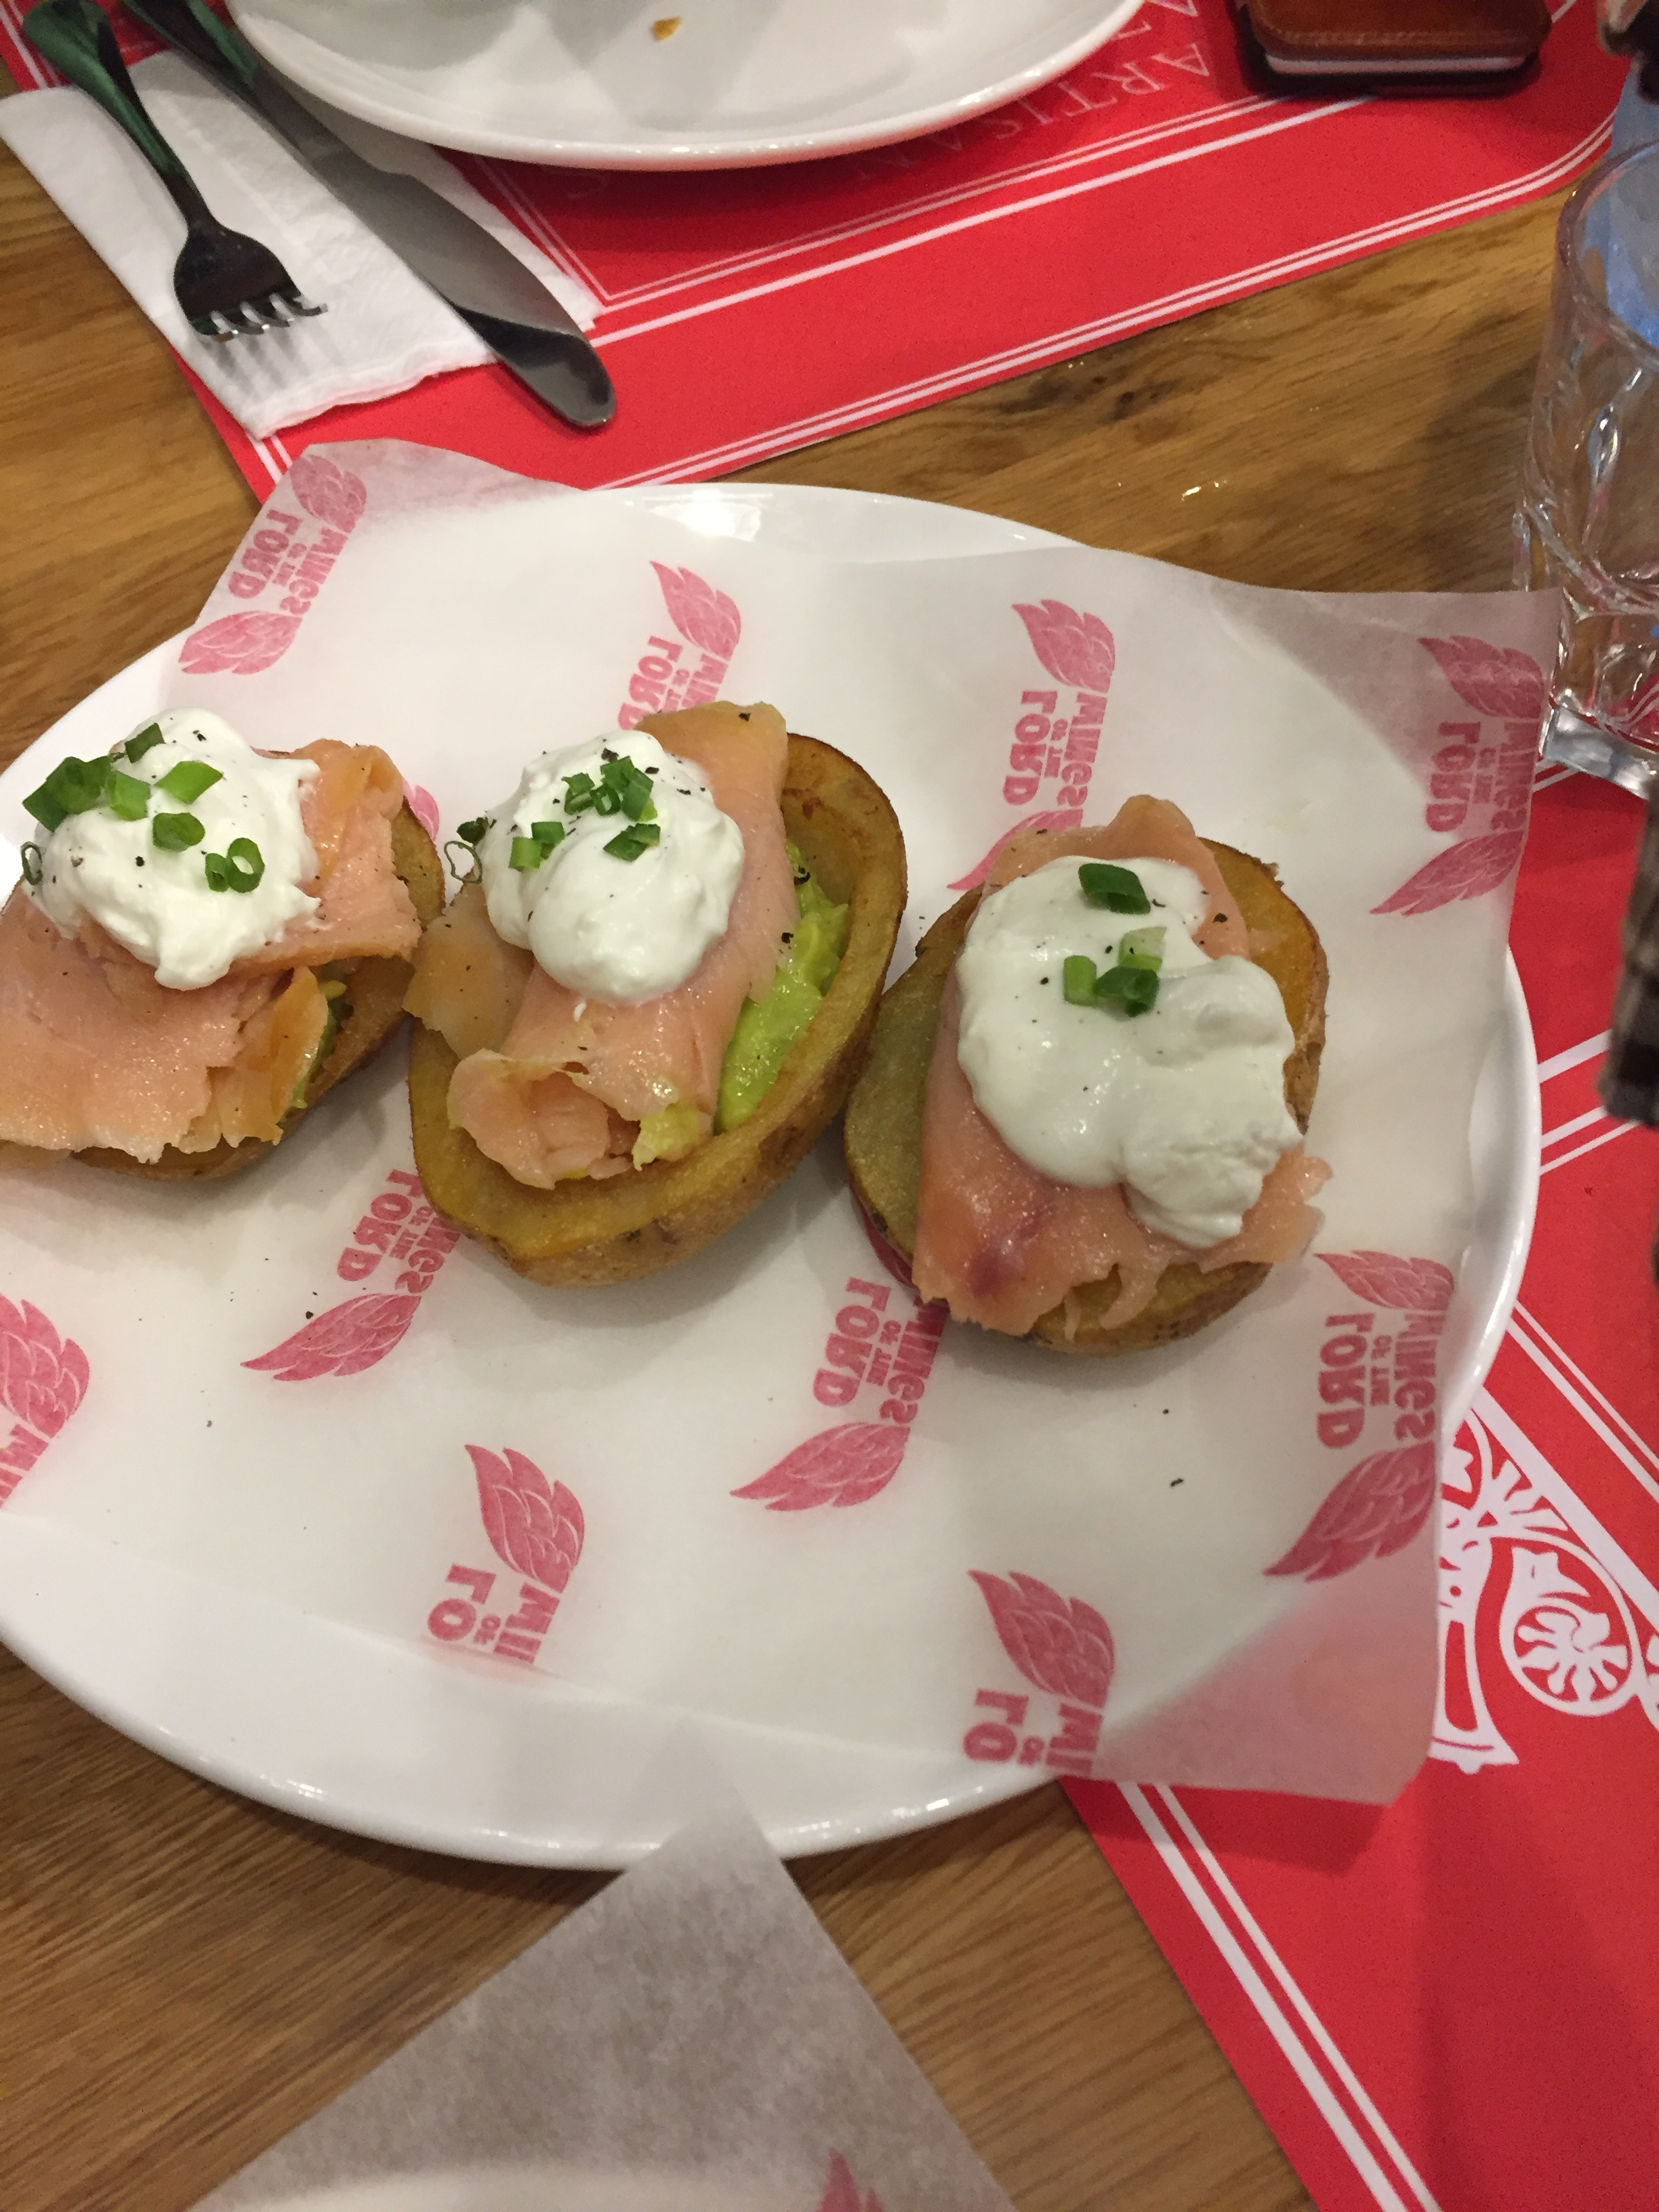 Smoked salmon and Guacamole Potato Skins, Lord of the Wings